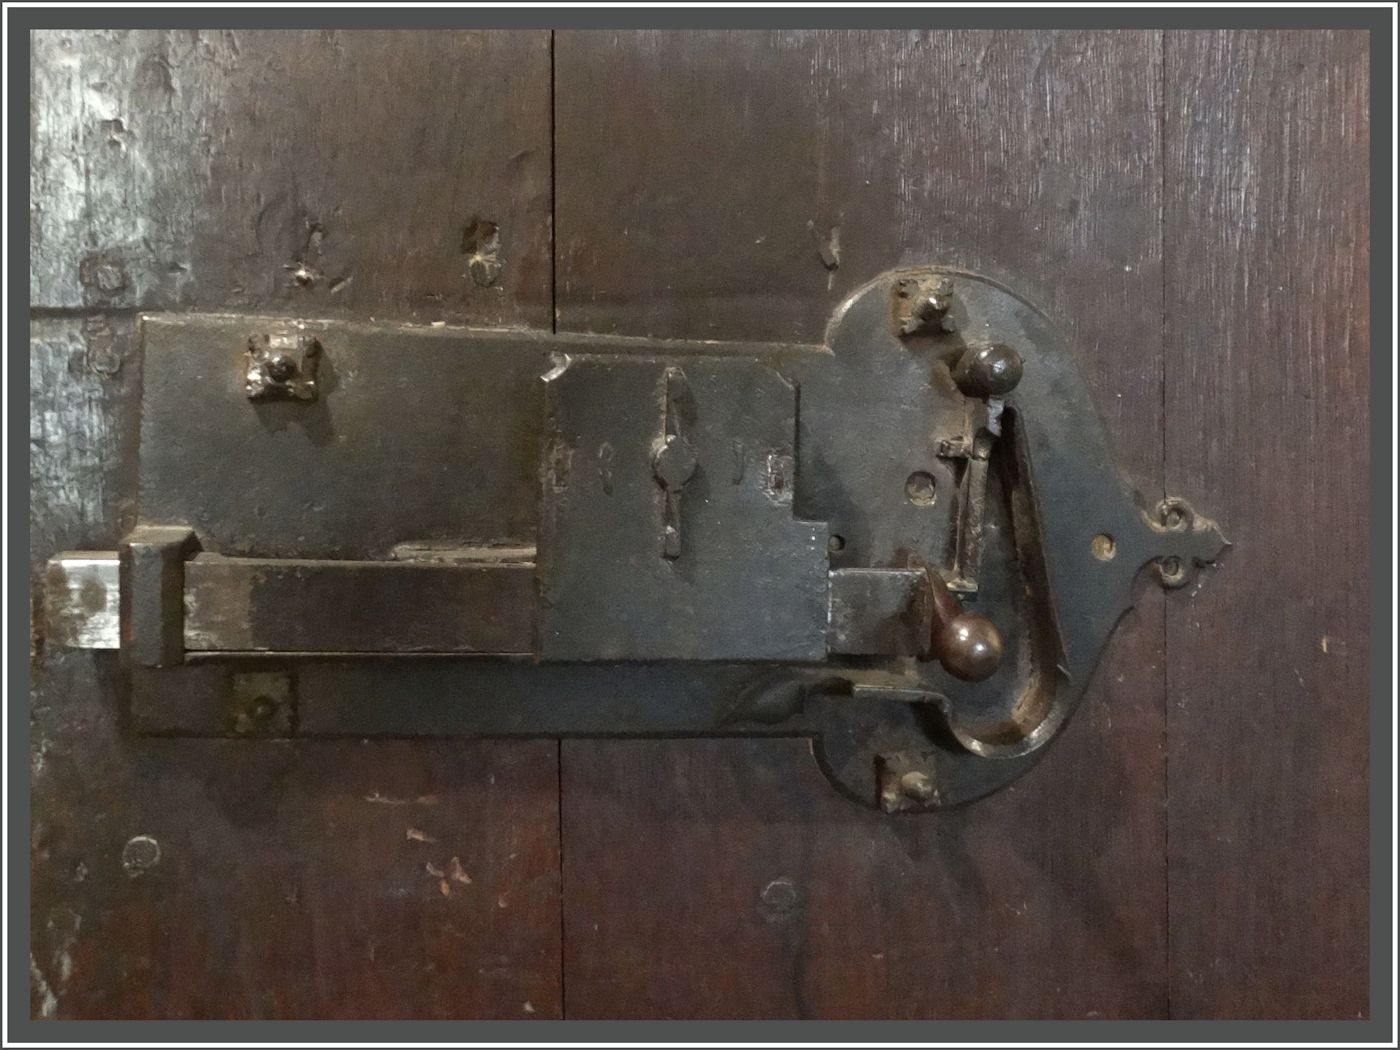 LOCK OF THE DOOR by Jim Williams